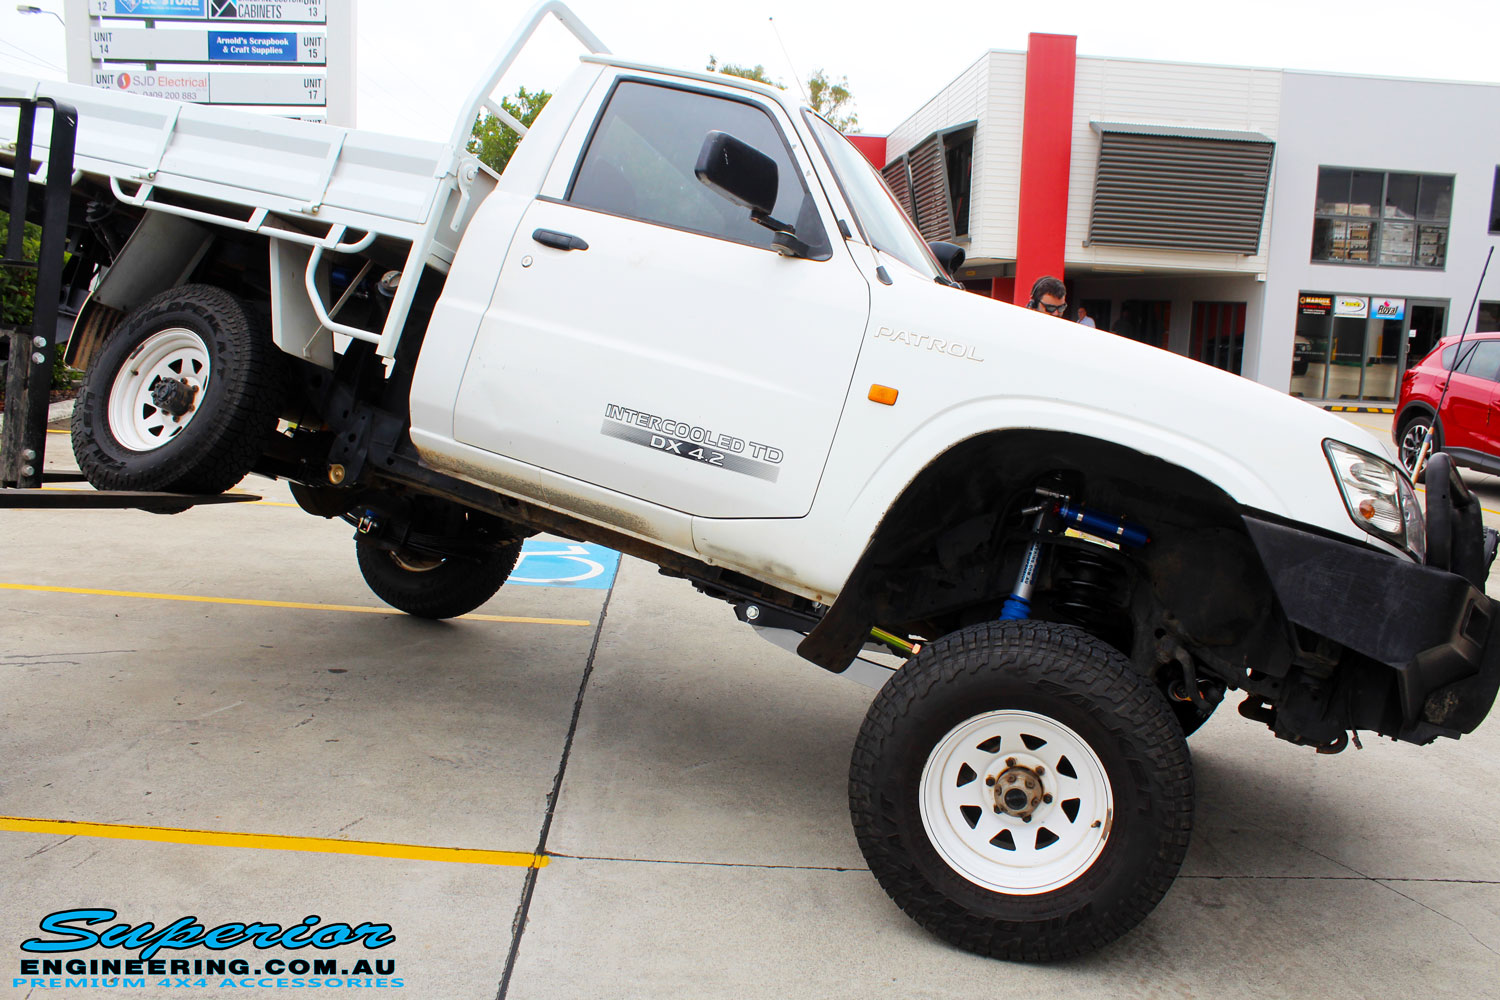 Right side view of this Nissan GU Patrol Ute being flexed from the rear left tyre after fitment of a Superior 4-5 Inch Lift Kit with Superior Remote Reservoir Shocks & Superior Hybrid 5 Link Radius Arms